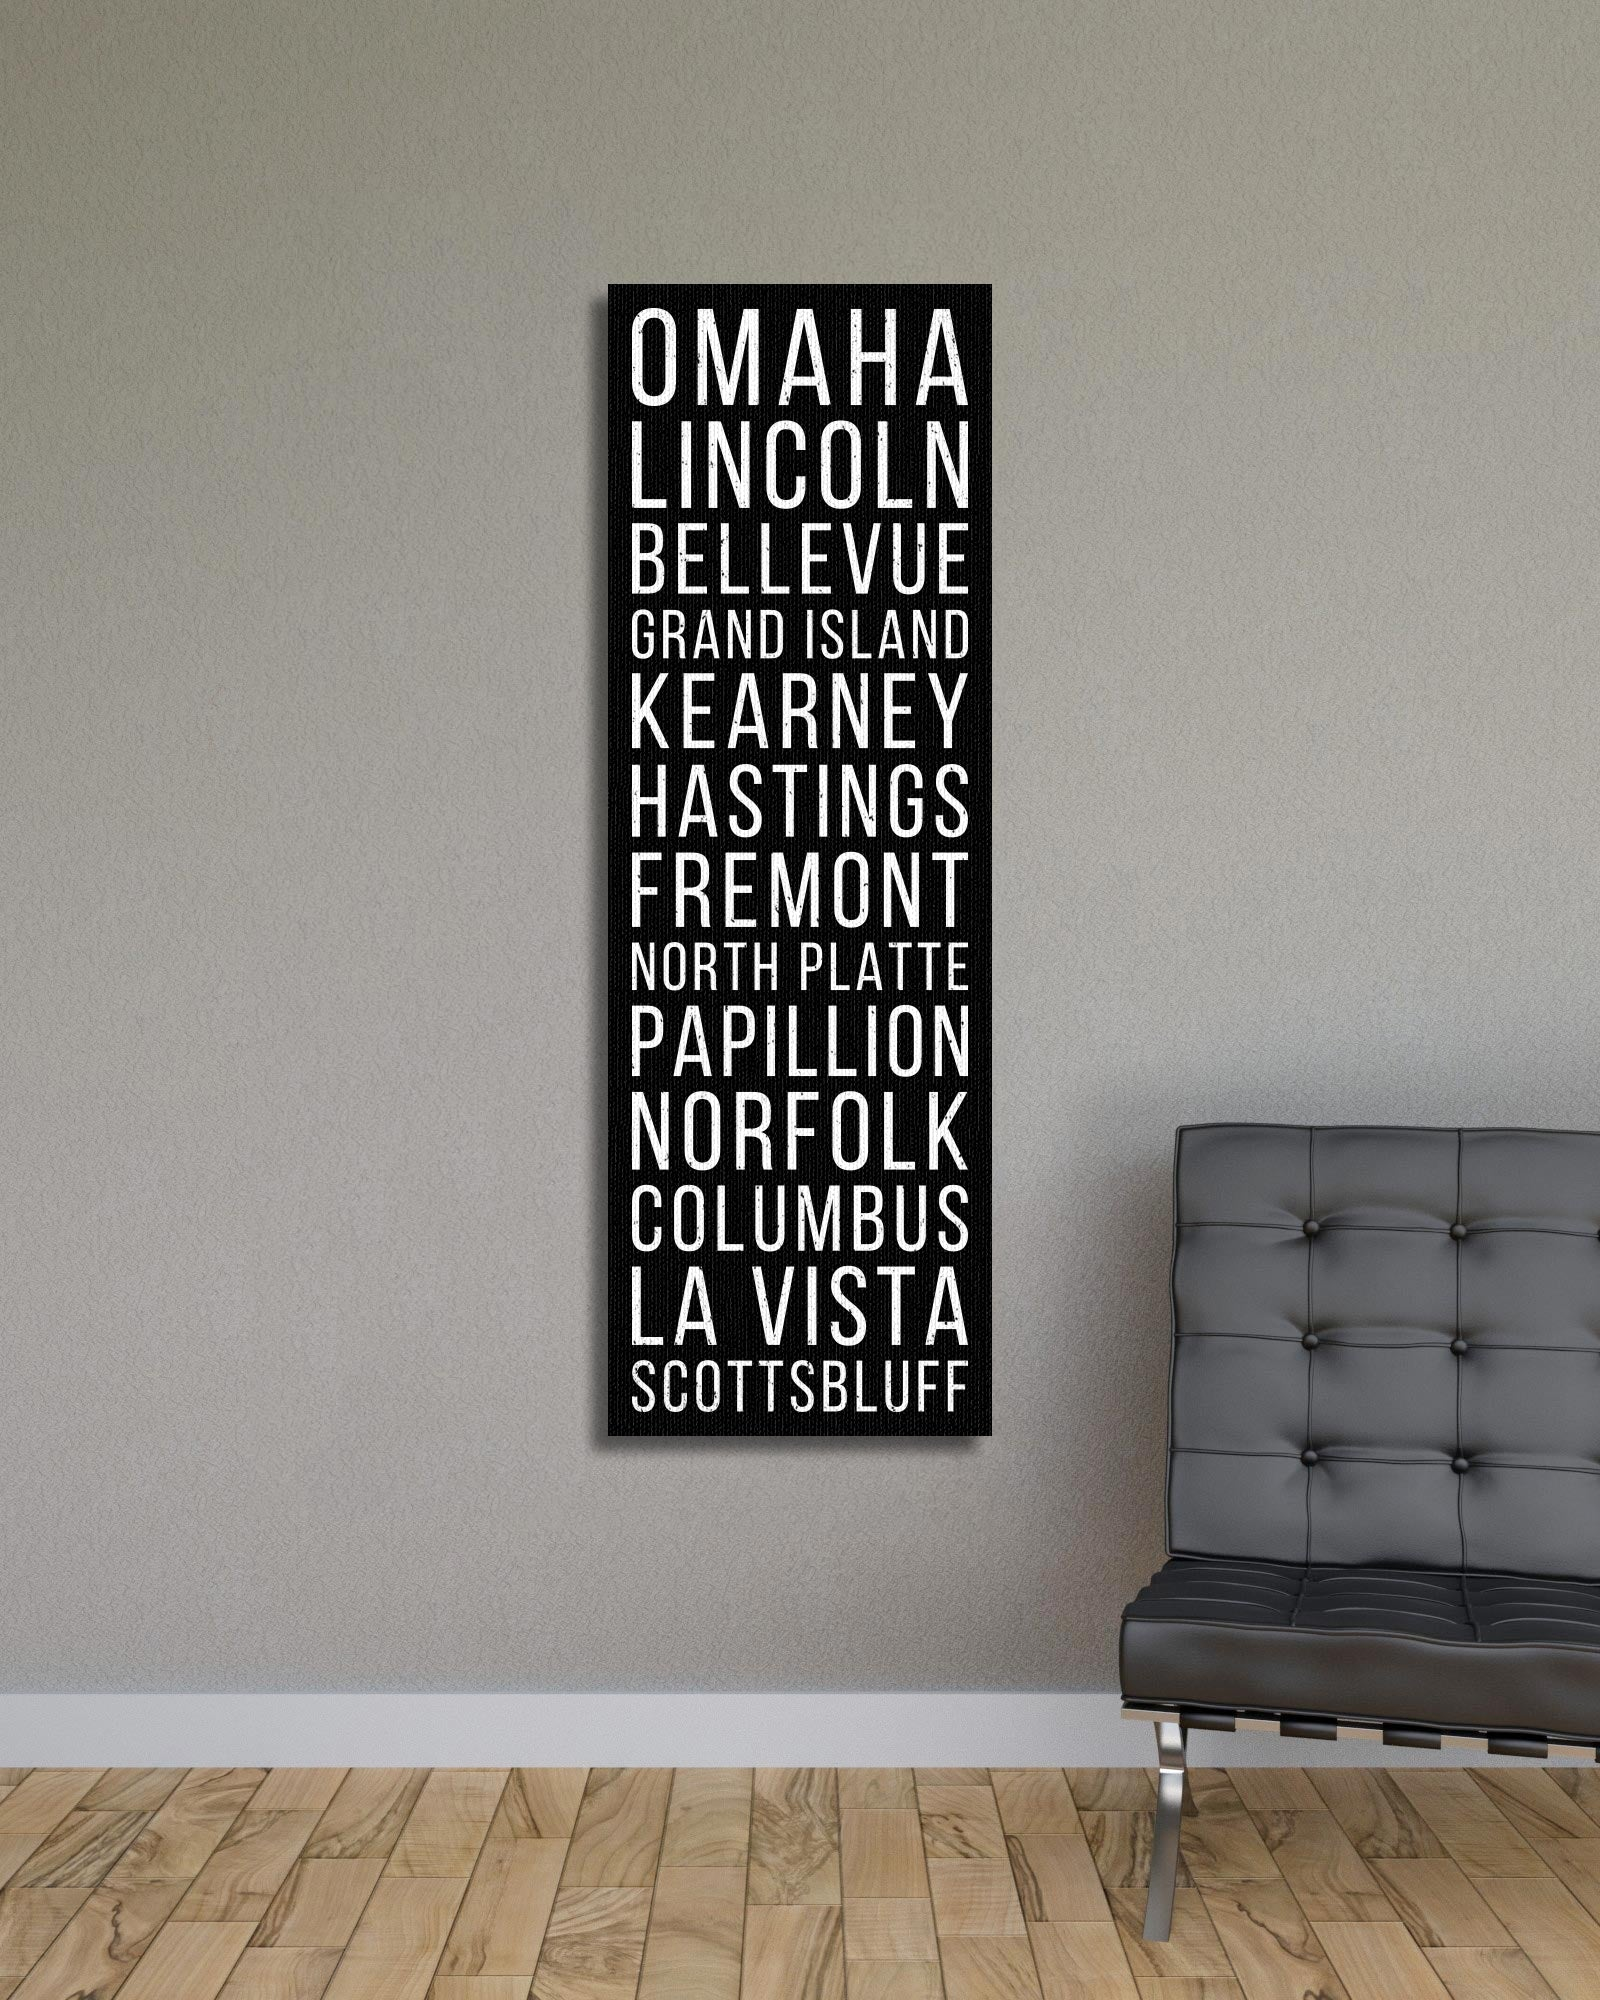 Nebraska Omaha Lincoln Bellevue Bus Scroll Subway Canvas Print